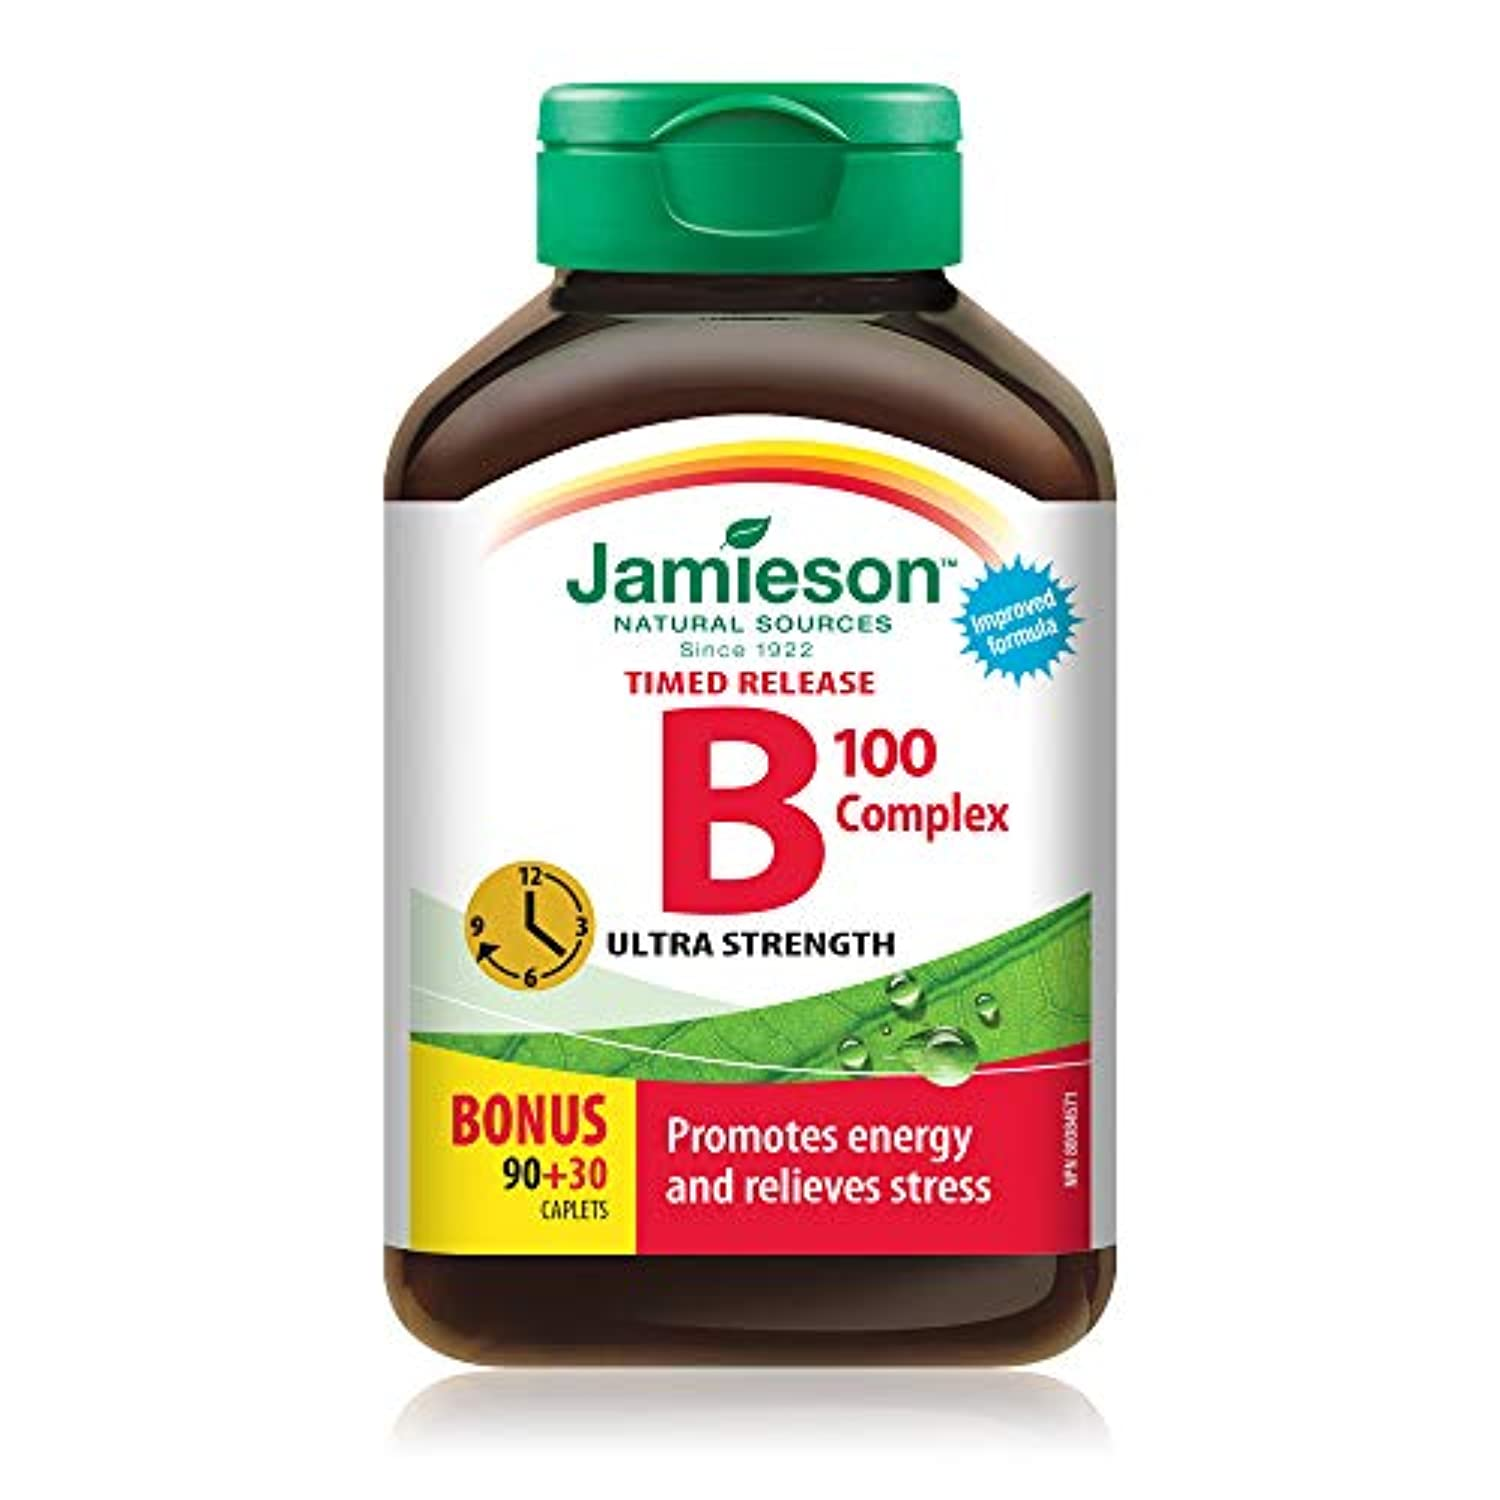 Jamieson B Complex 100 Ultra Strength Timed Release